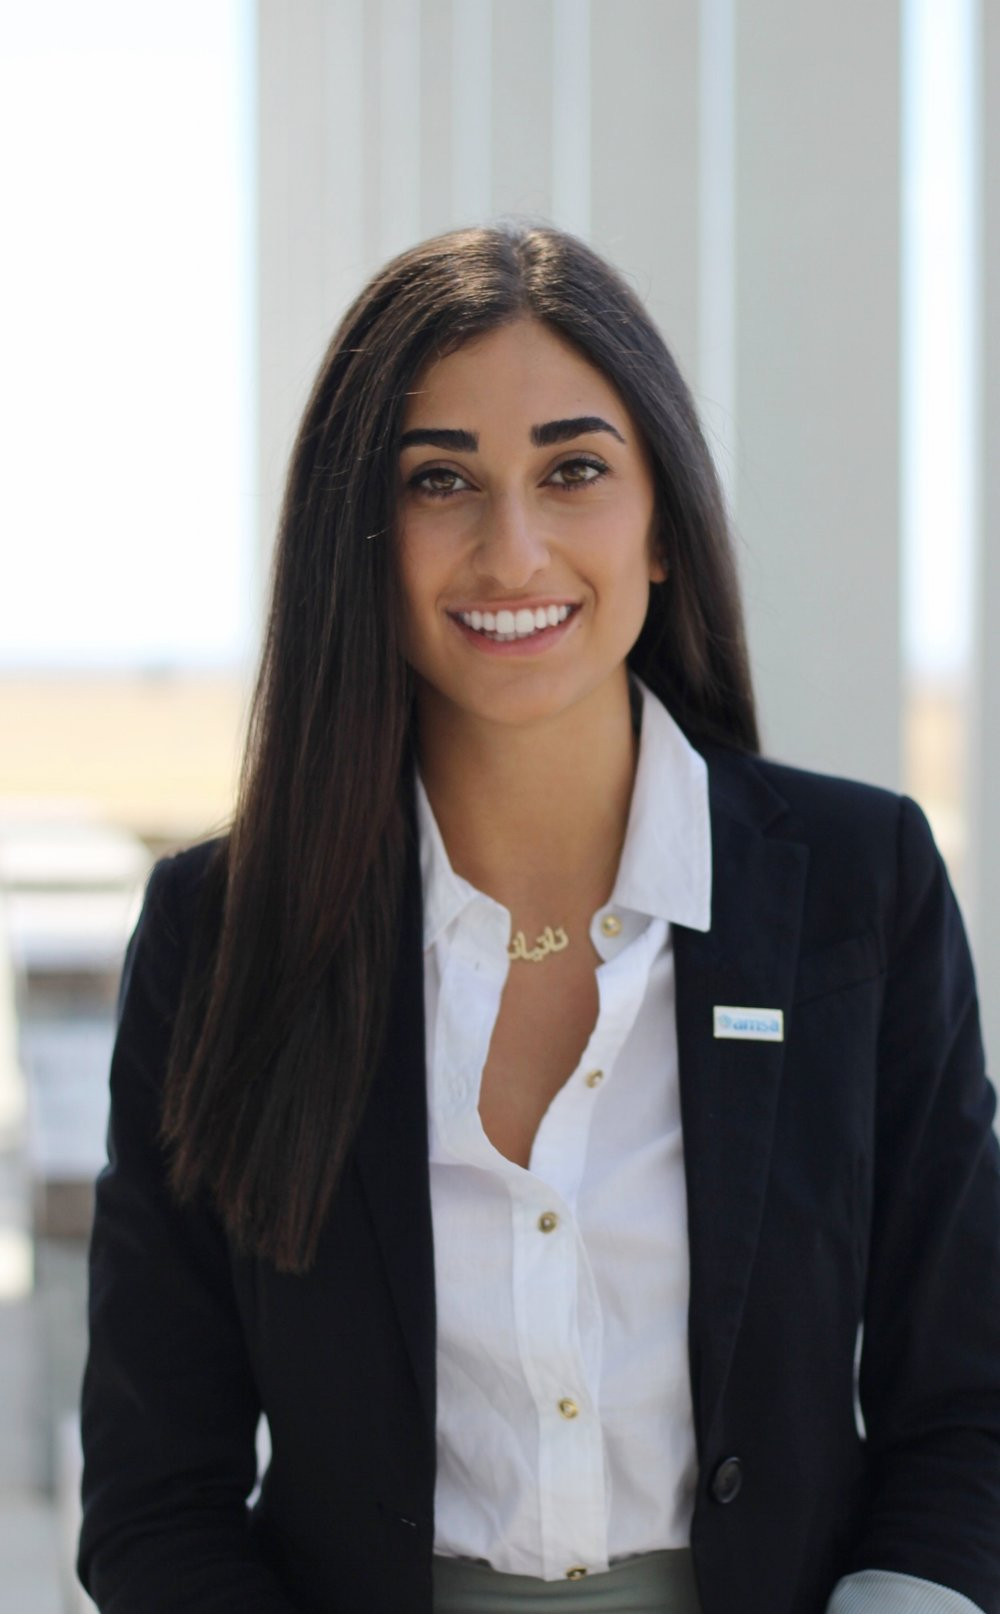 Tatiana Abdulnour: Vice President of Finance